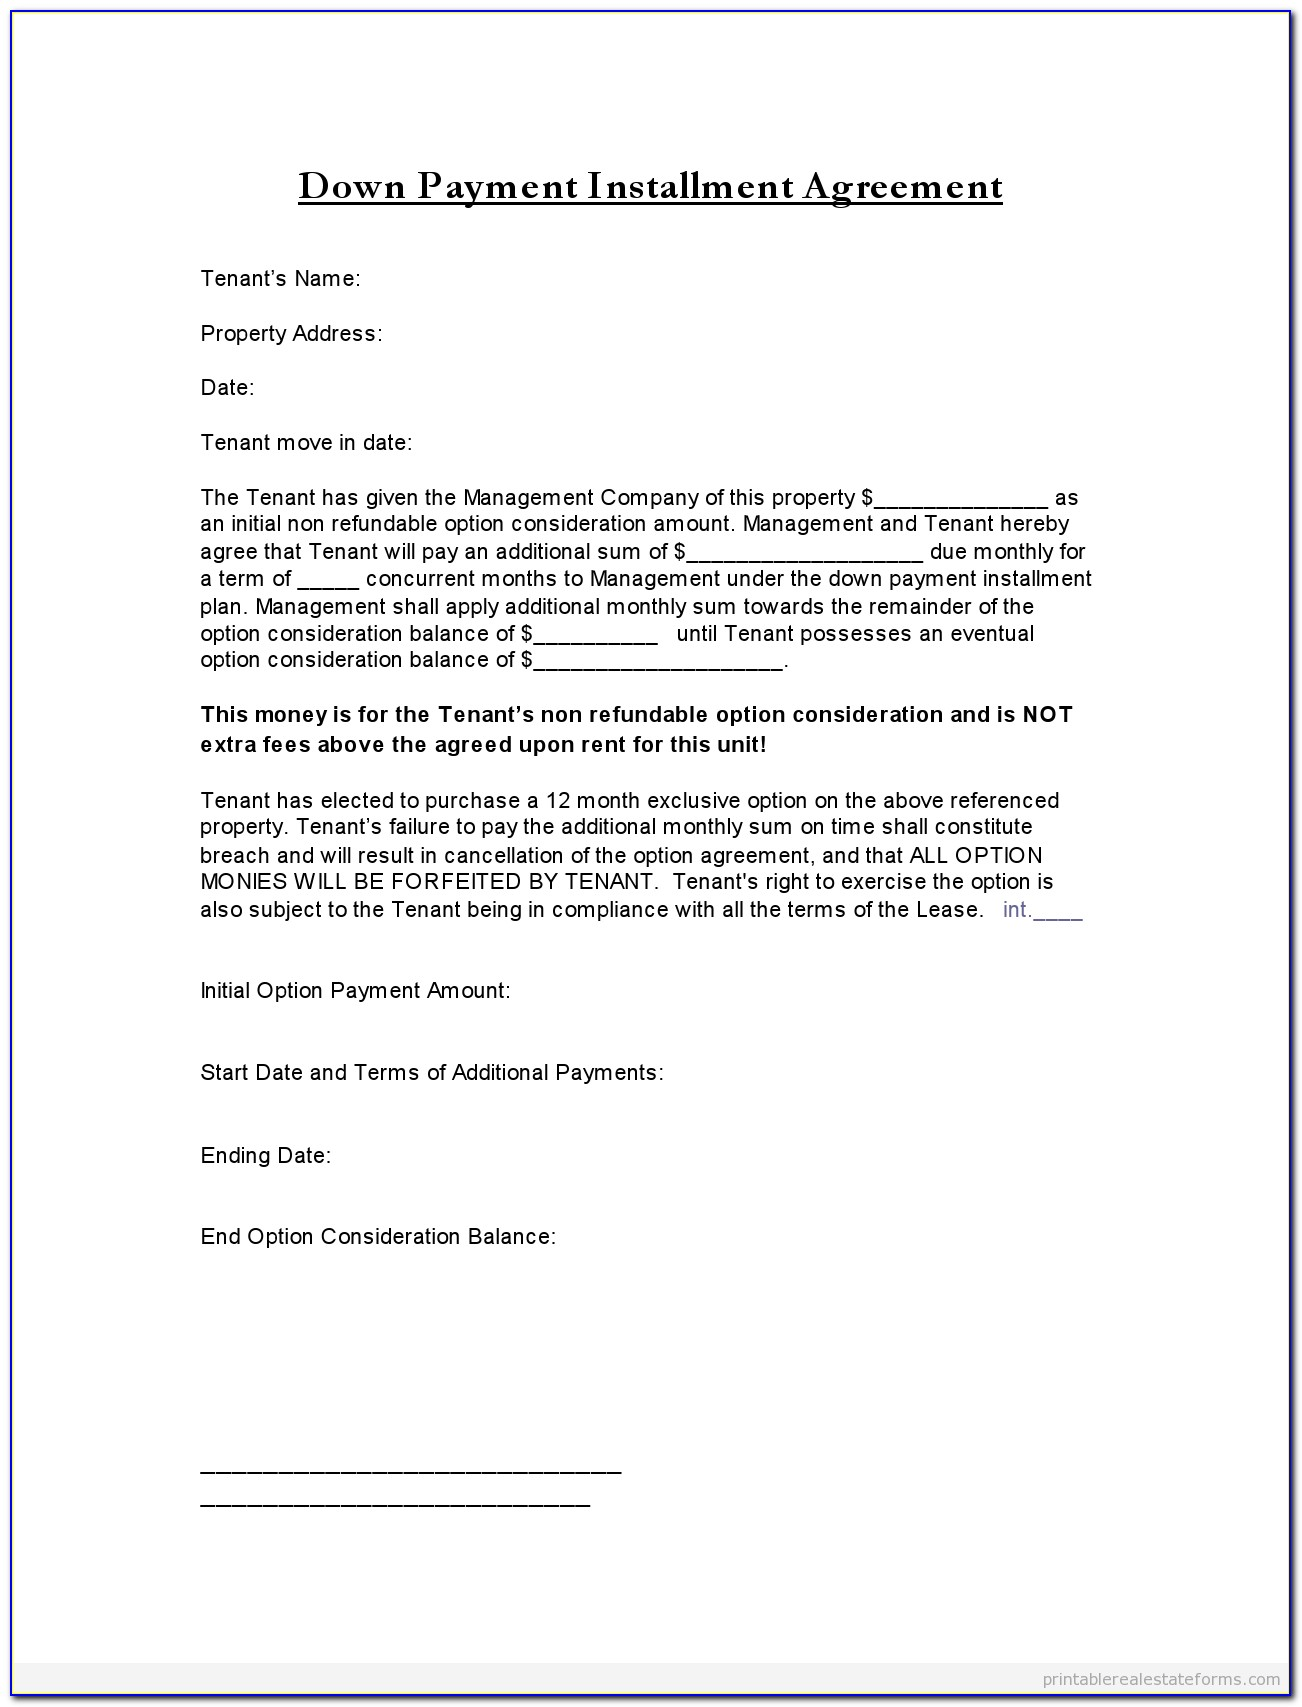 Free Promise To Pay Agreement Form